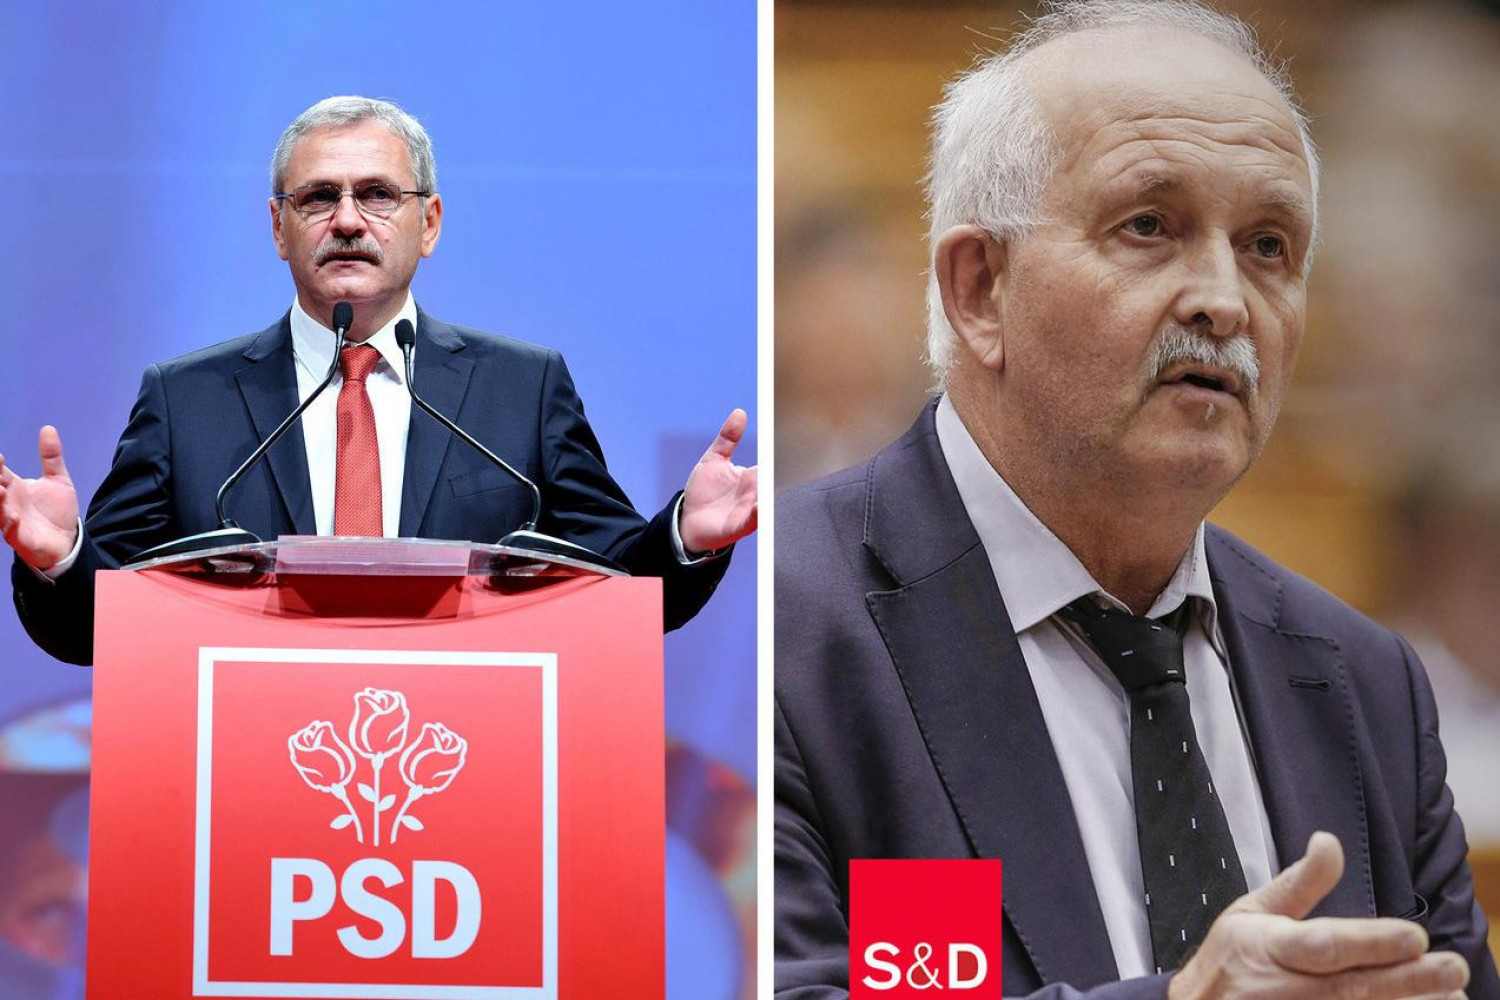 Partidul Social Democrat from Romania (cc-by-2.0) / S&D